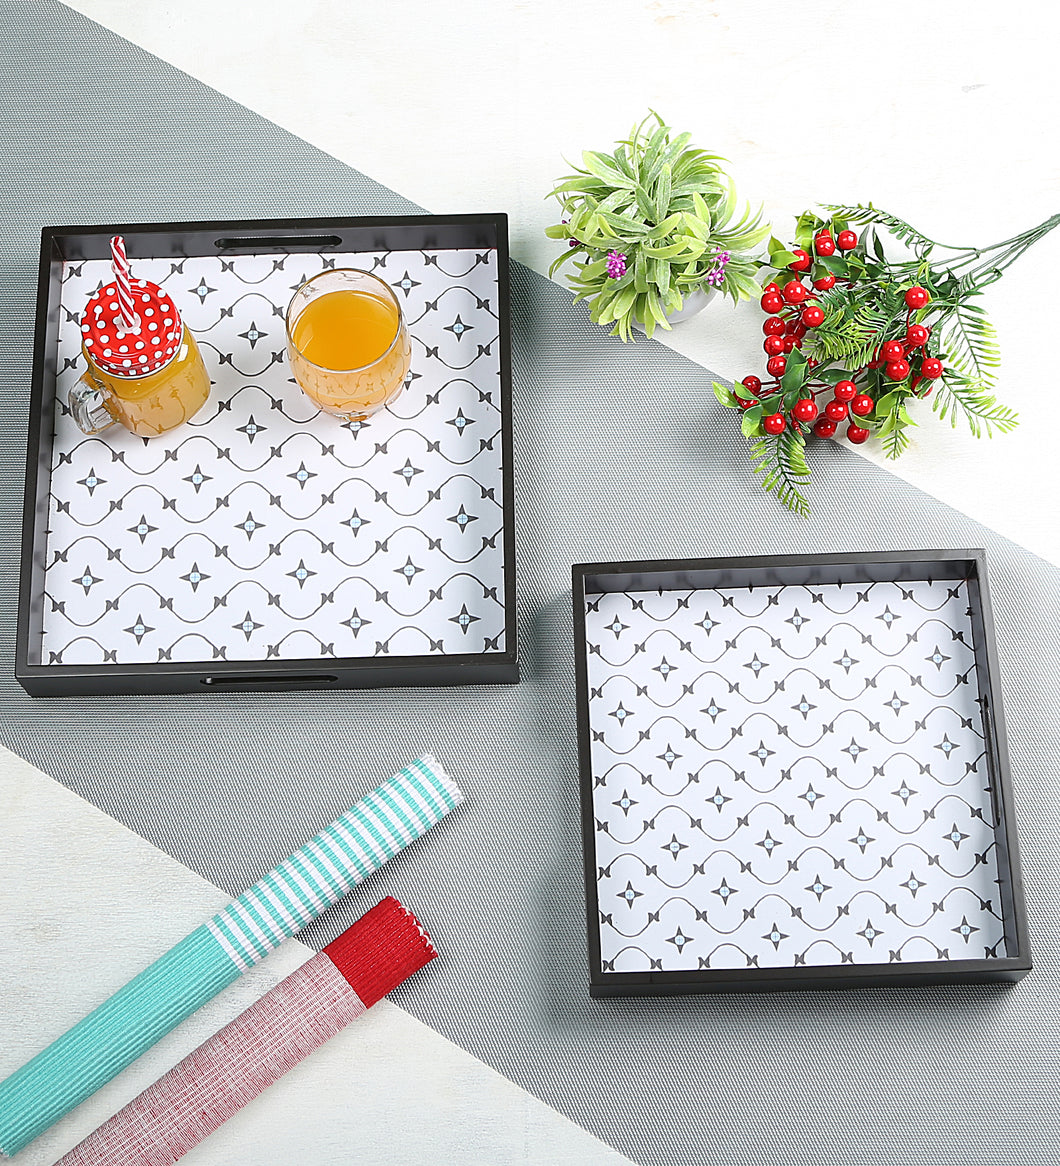 Crayton Star MDF Square Serving Tray Set of 2